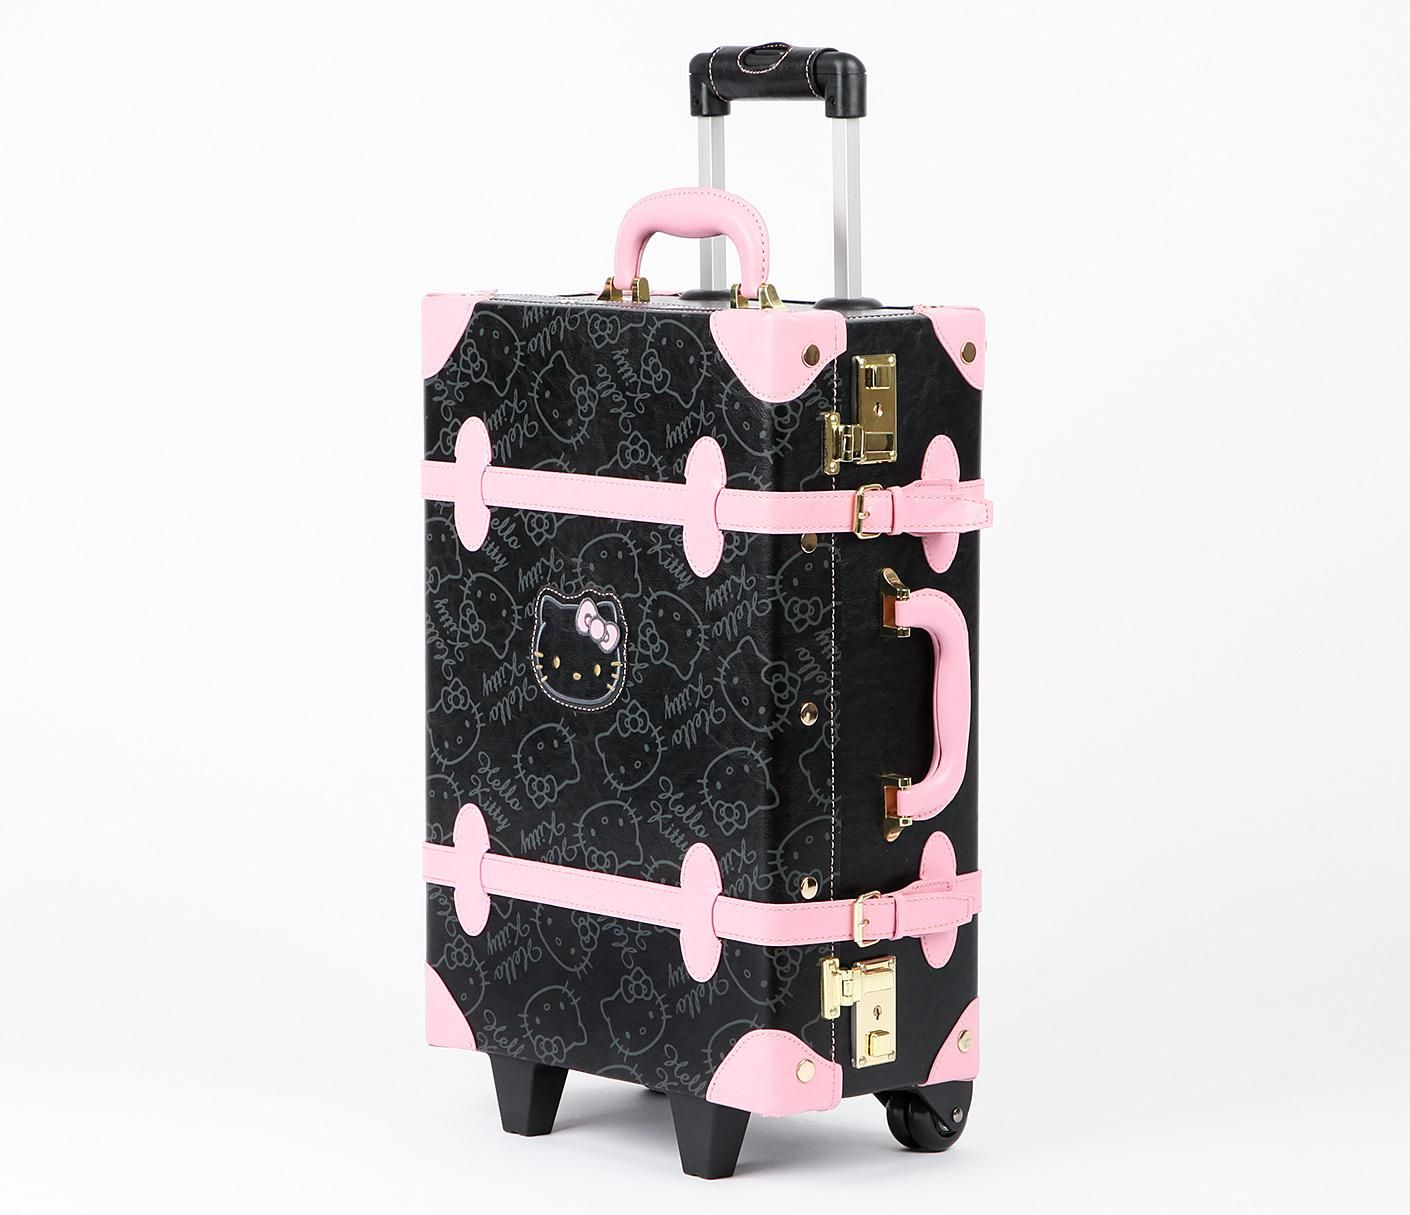 a6c7ecb68c Hello Kitty Vintage Suitcase  Black in Bags Travel + Accessories Luggage +  Tags at Sanrio